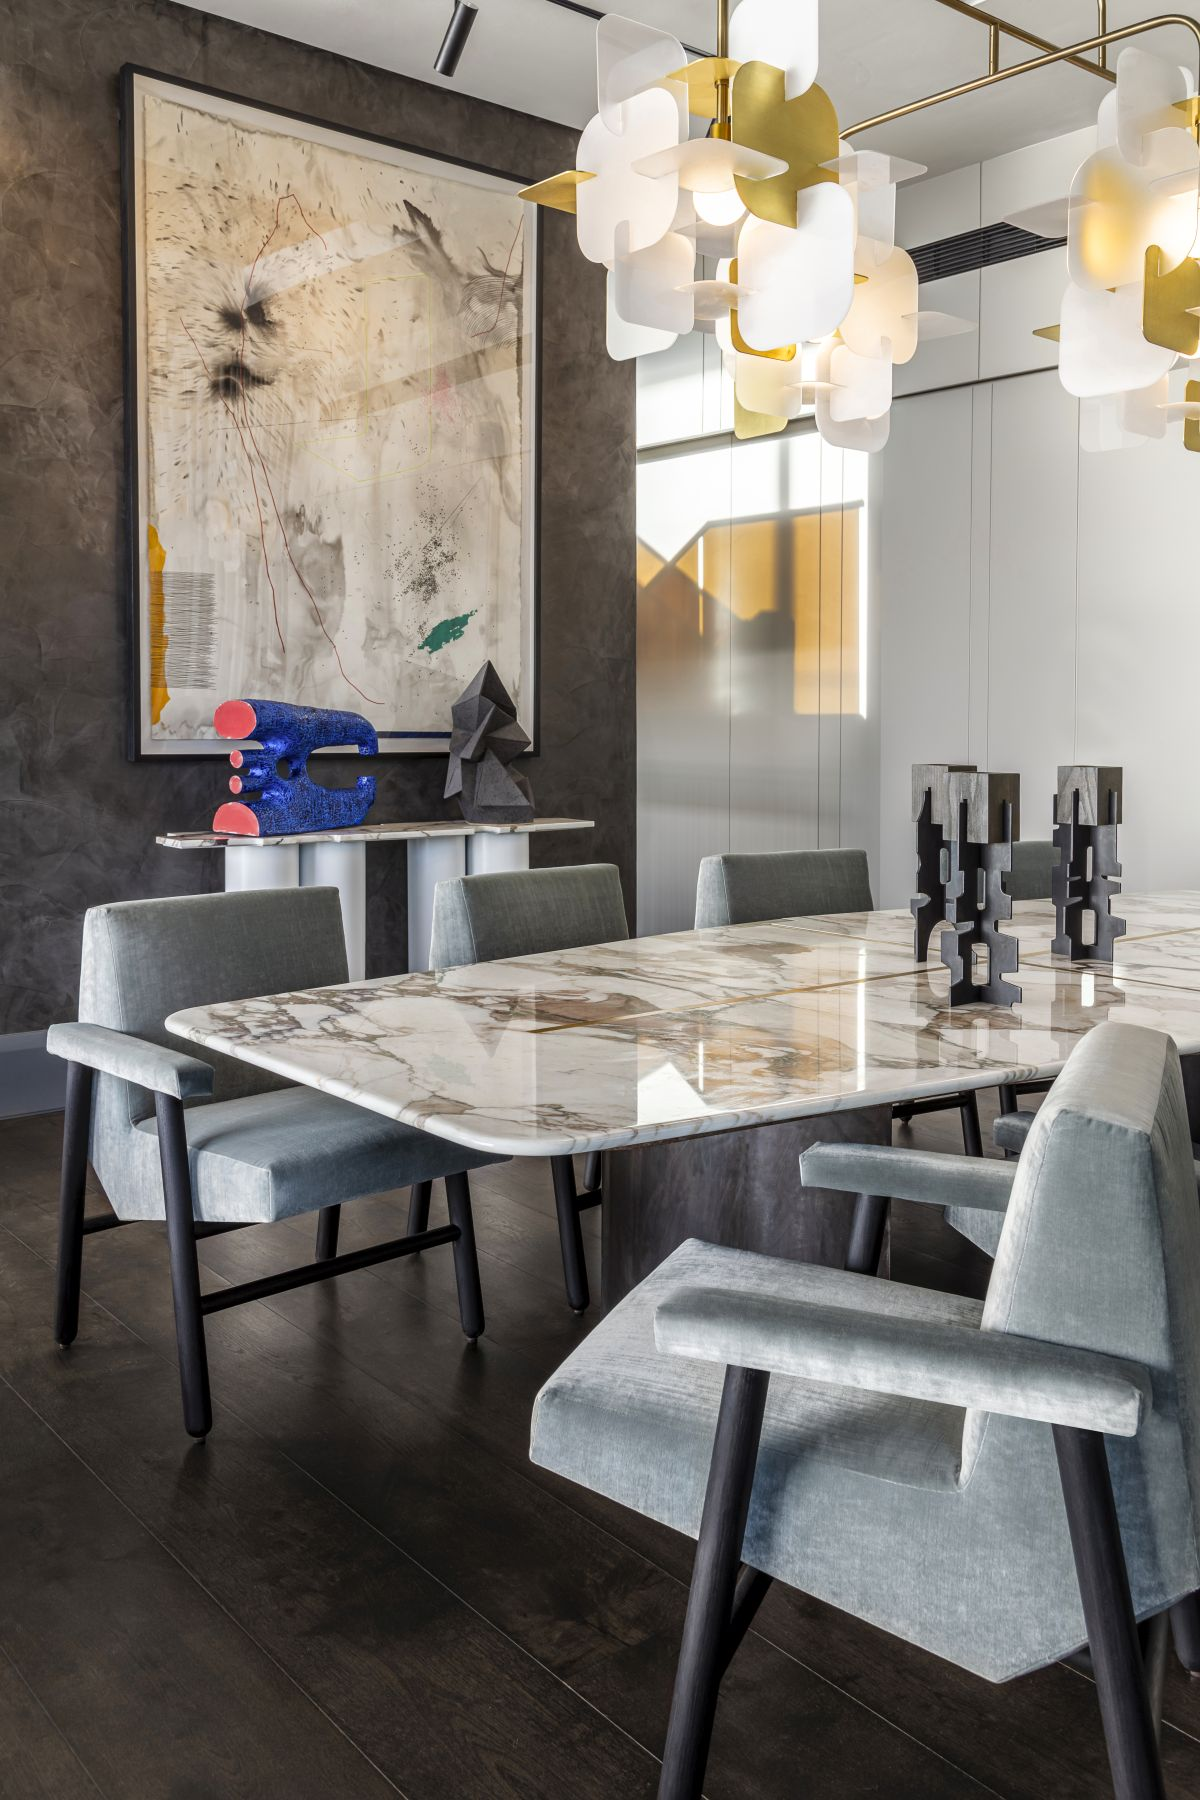 A contemporary chandelier adds visual interest to the already stylish dining area